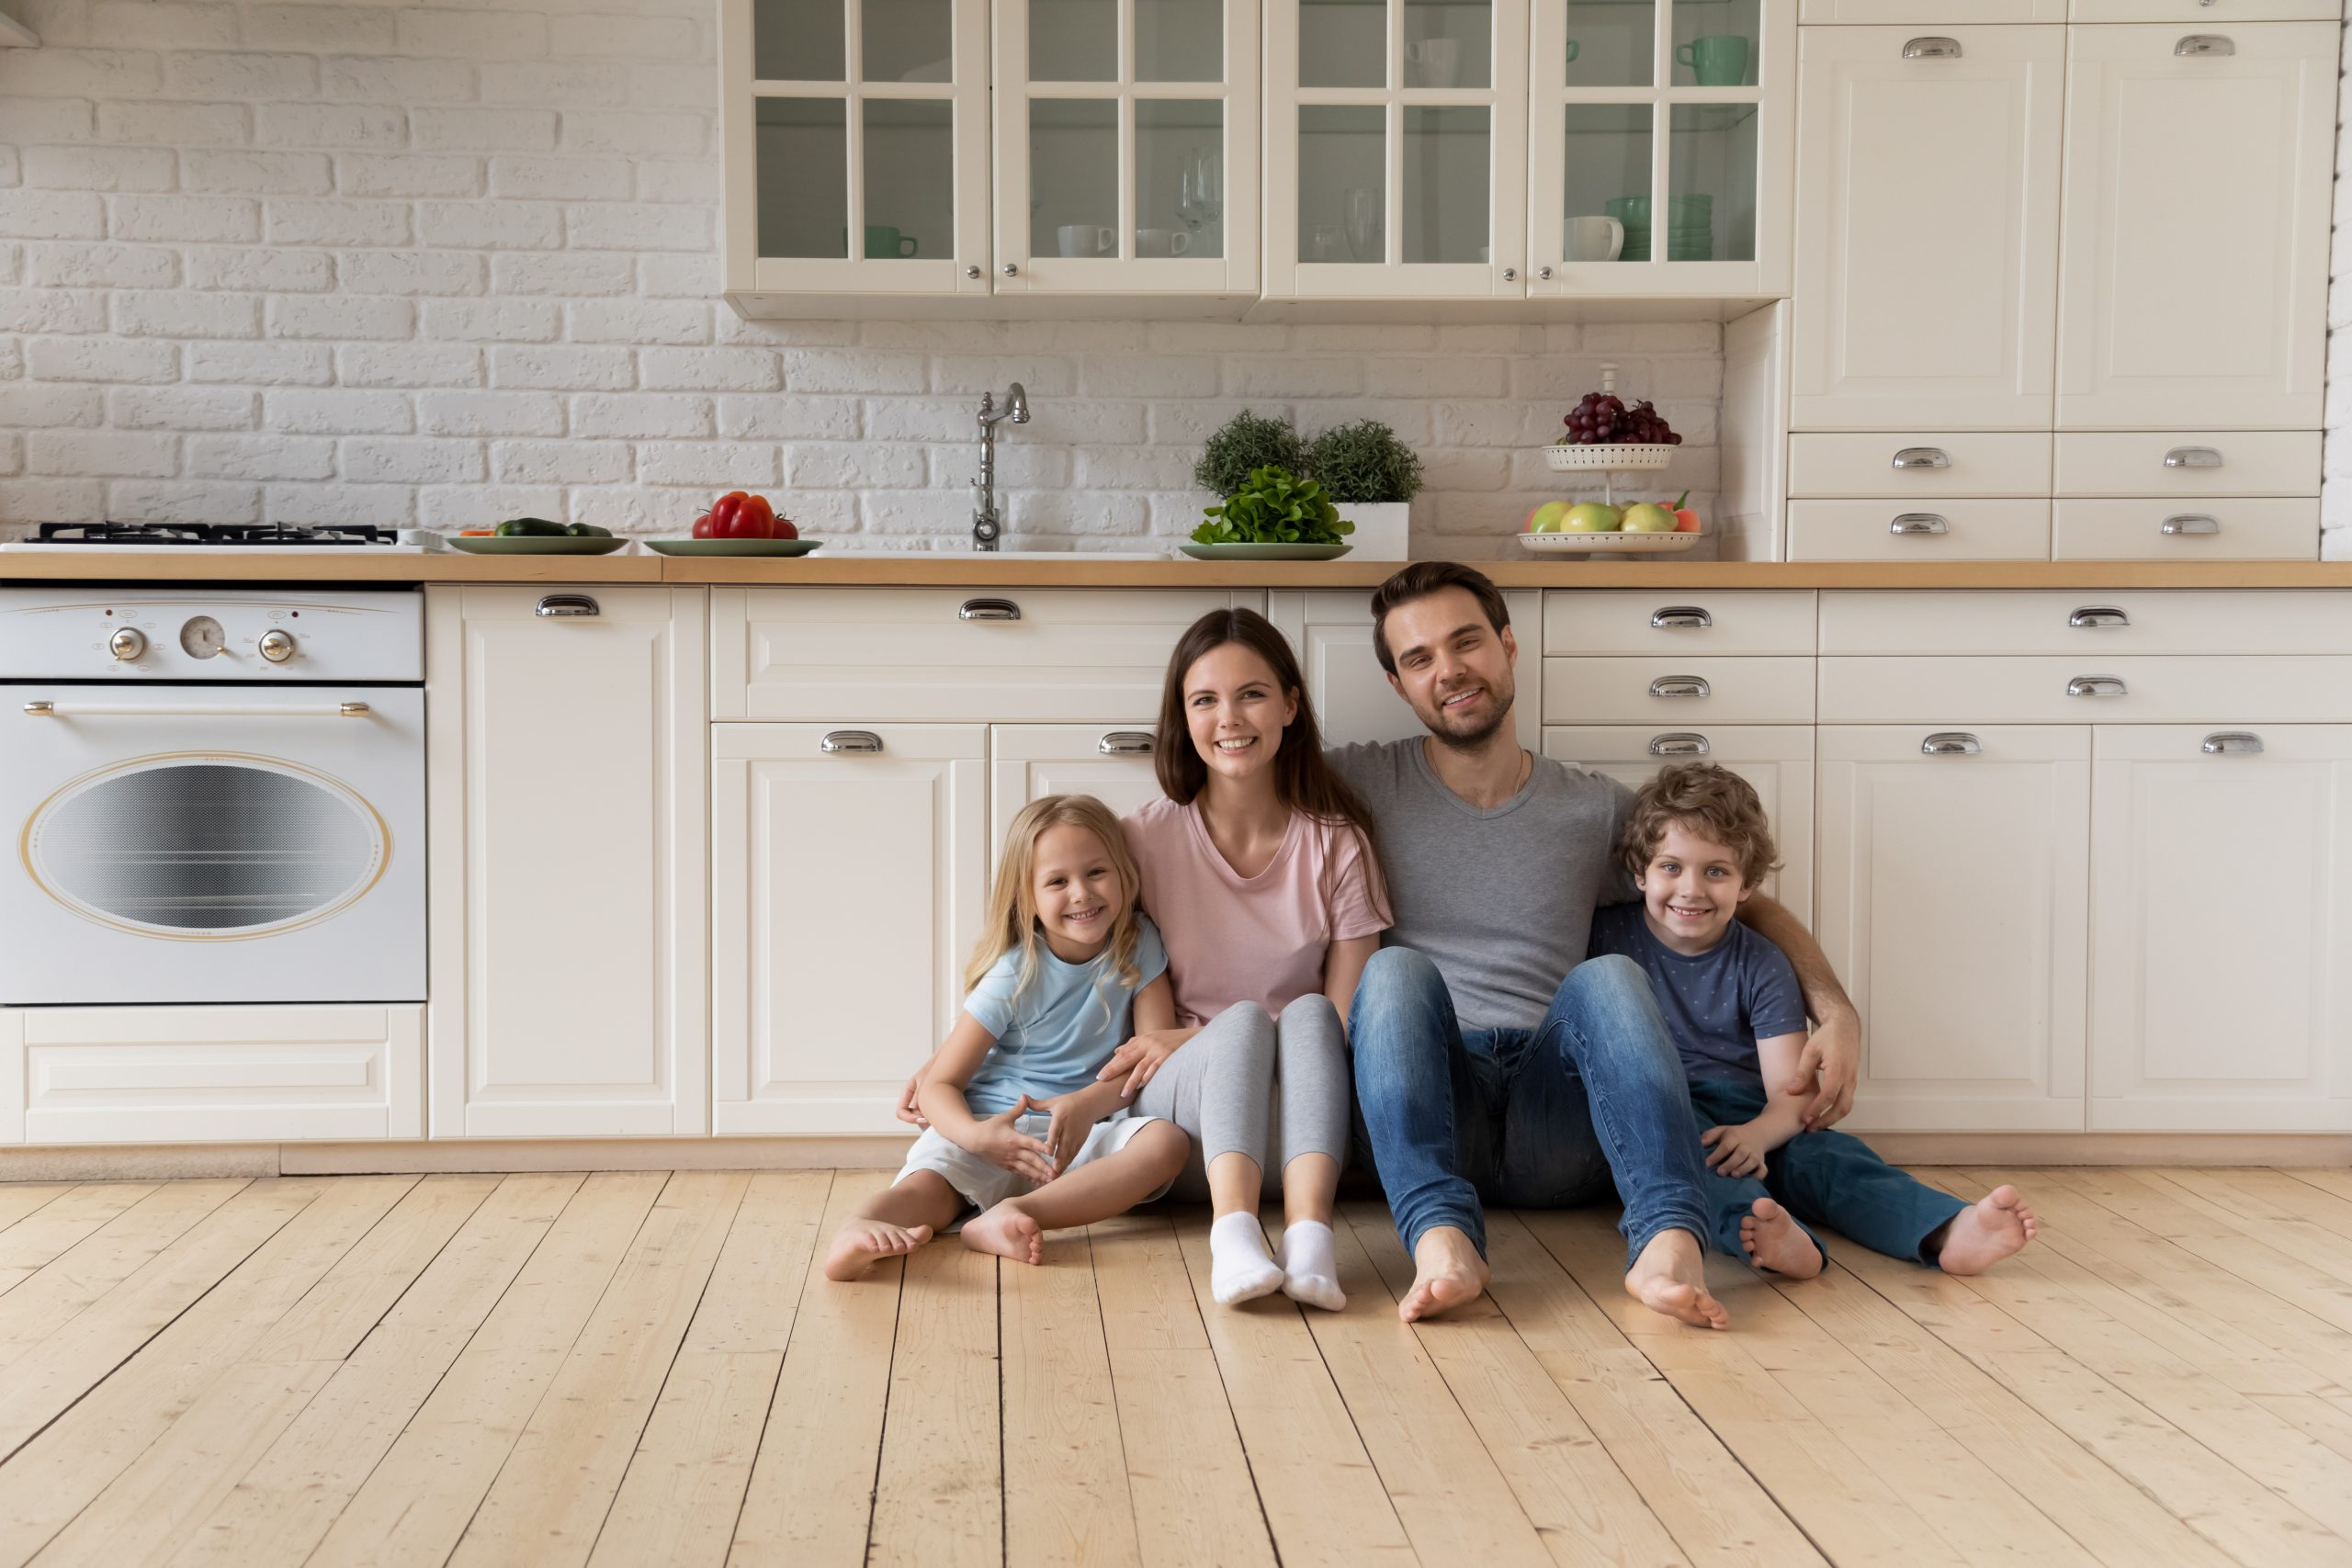 Young family of 4 sitting on the kitchen floor in their newly renovated modern white kitchen